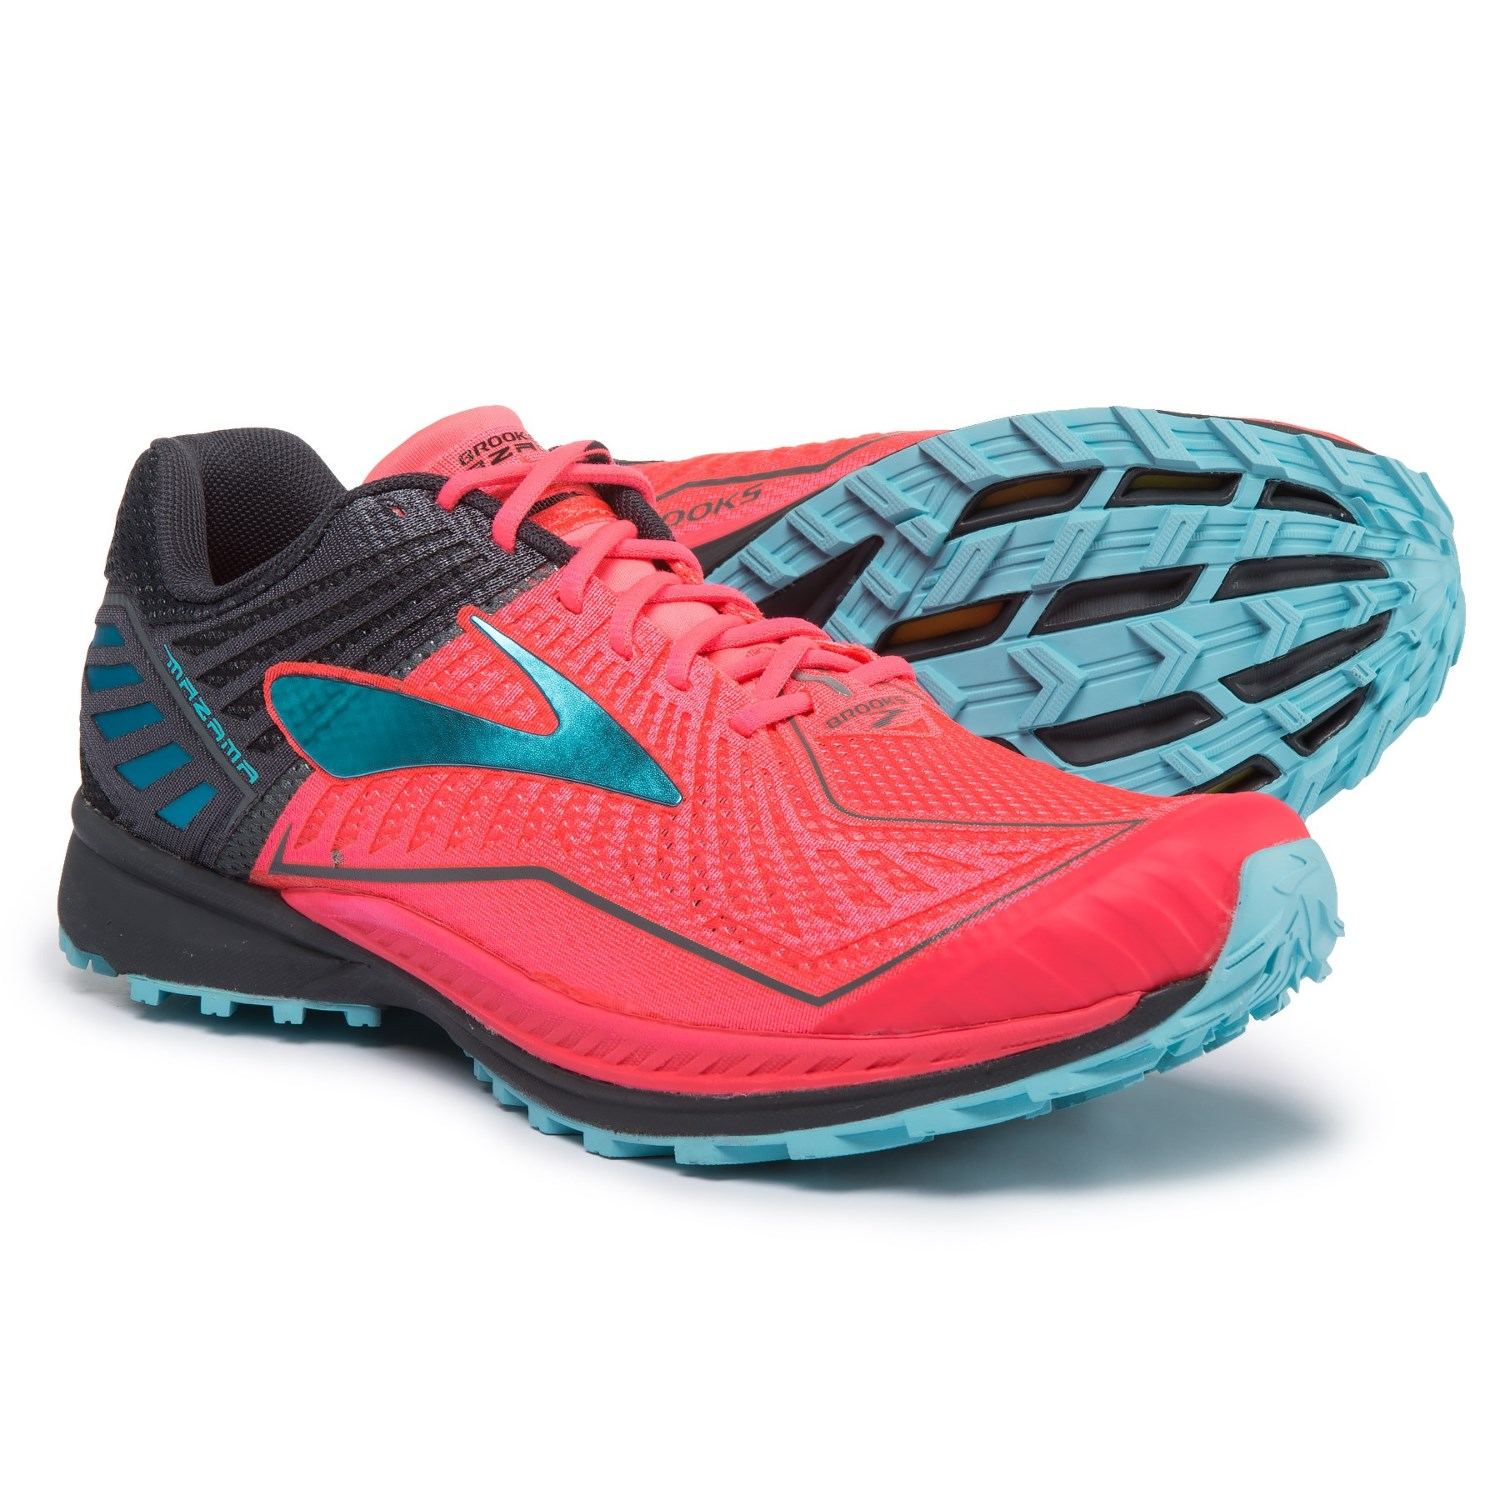 c67466ed8a8 Brooks Mazama Trail Running Shoes (For Women) in Diva Pink Anthracite Blue